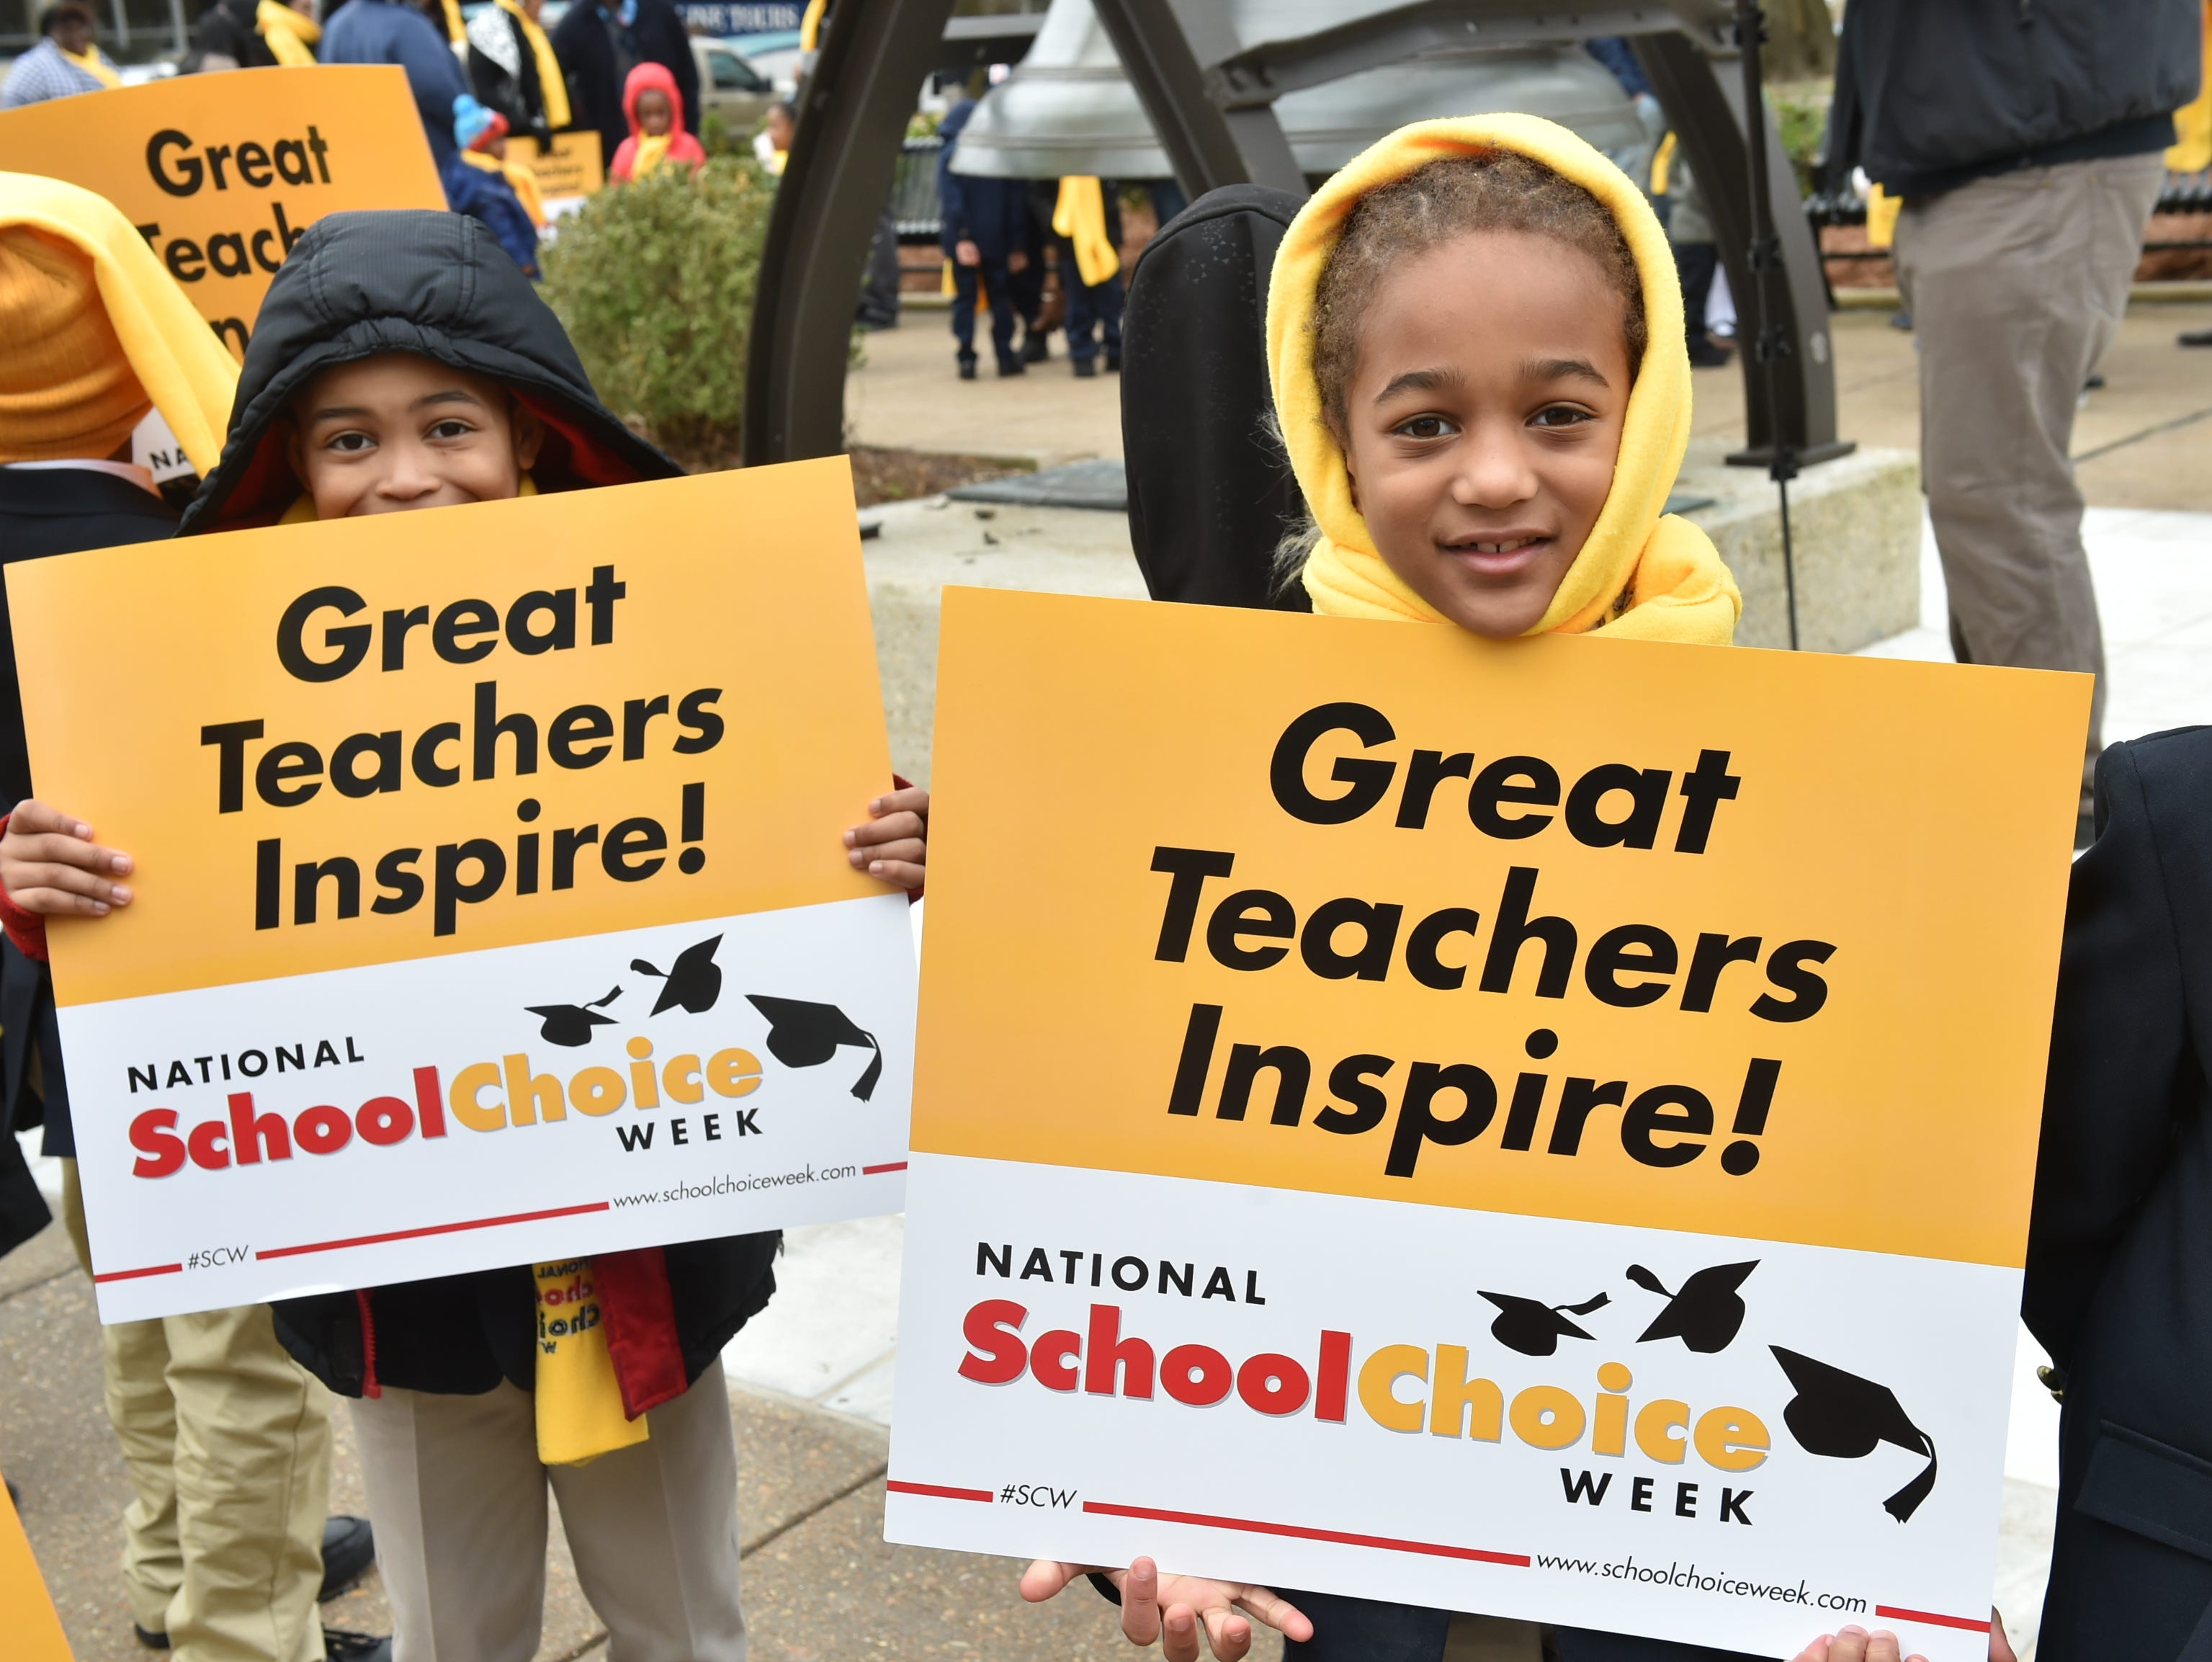 A National School Choice Week rally was held on the steps of the capitol building in Jackson, MS today. Students from across the state attended the rally and met with legislators regarding school choice in Mississippi. Tuesday, Jan. 22, 2019.